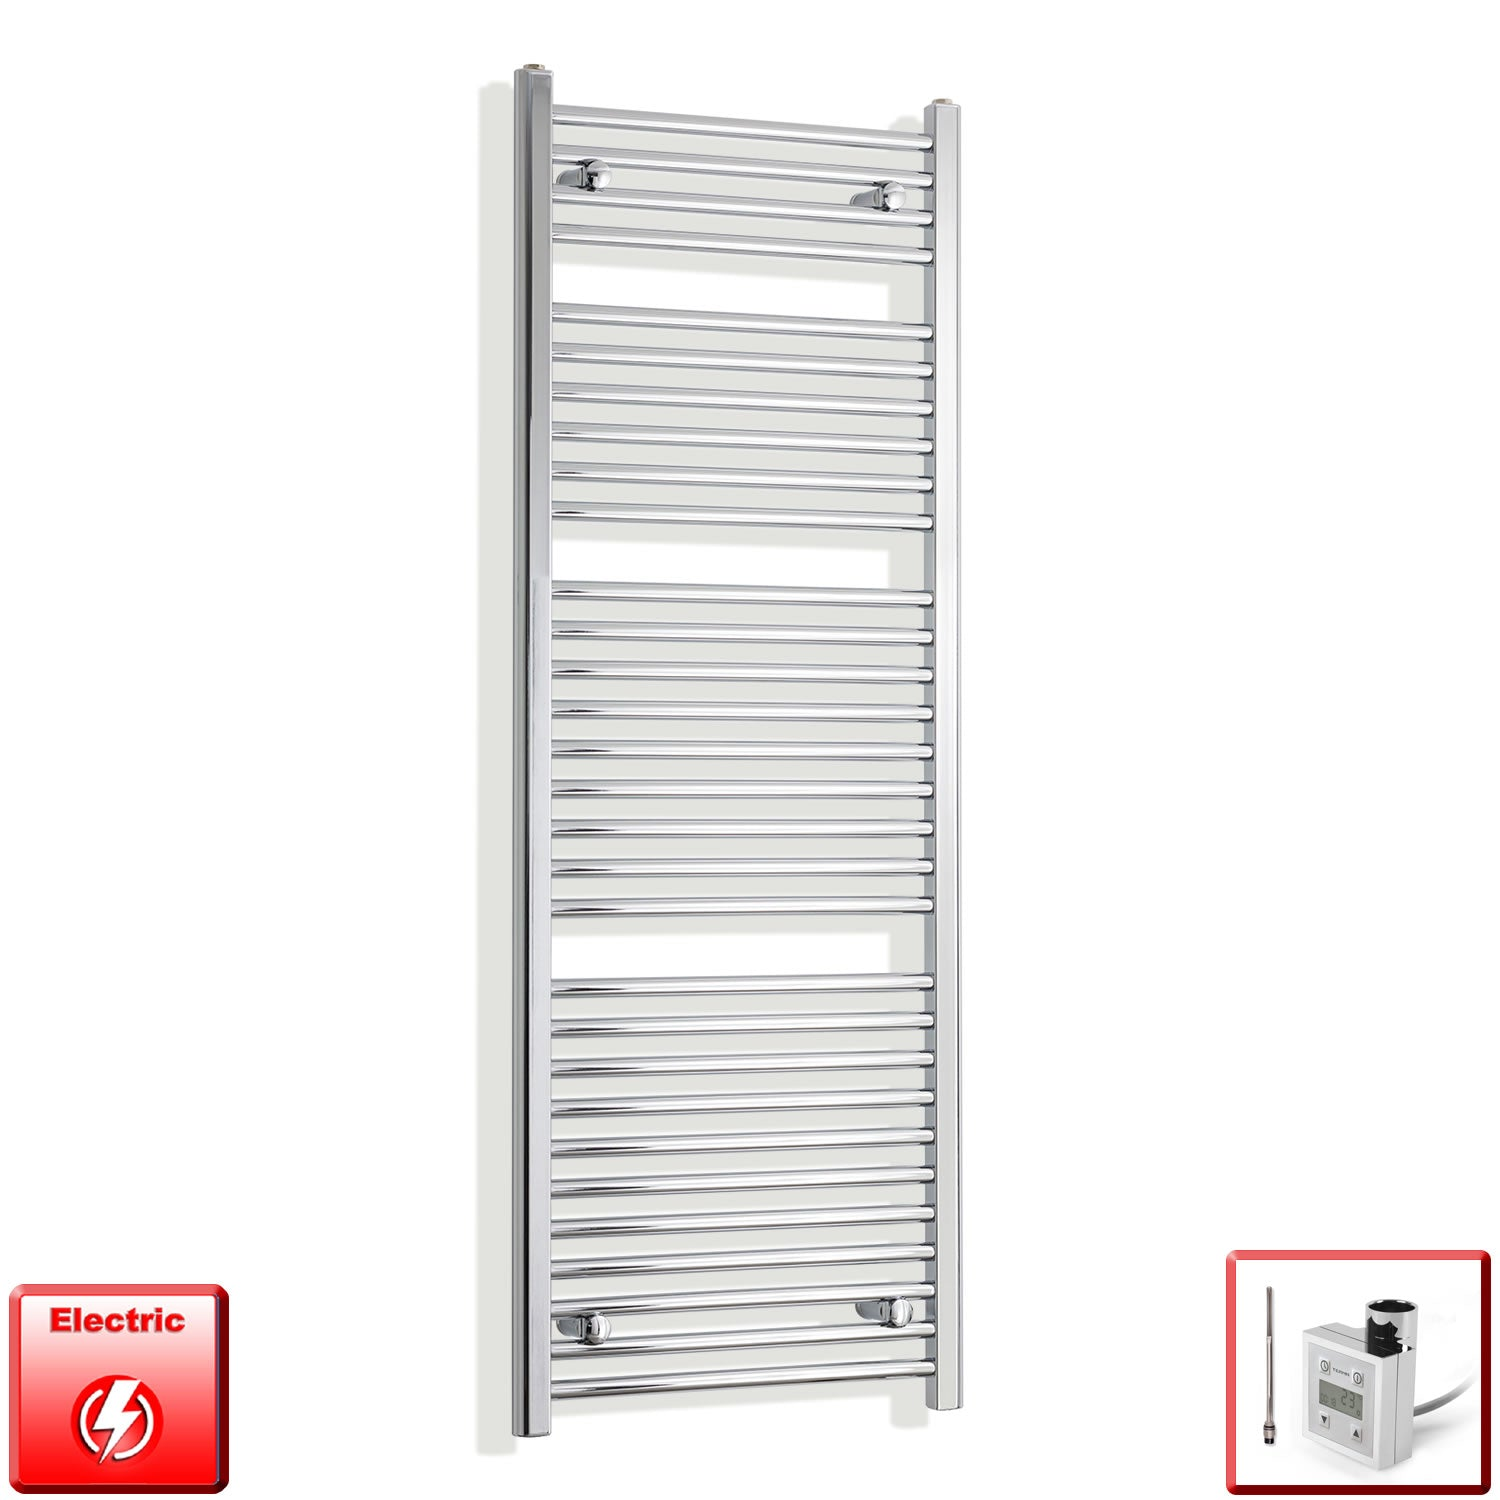 450mm Wide 1500mm High Flat Or Curved Chrome Pre-Filled Electric Heated Towel Rail Radiator HTR,KTX-3 Thermostatic Element / Straight